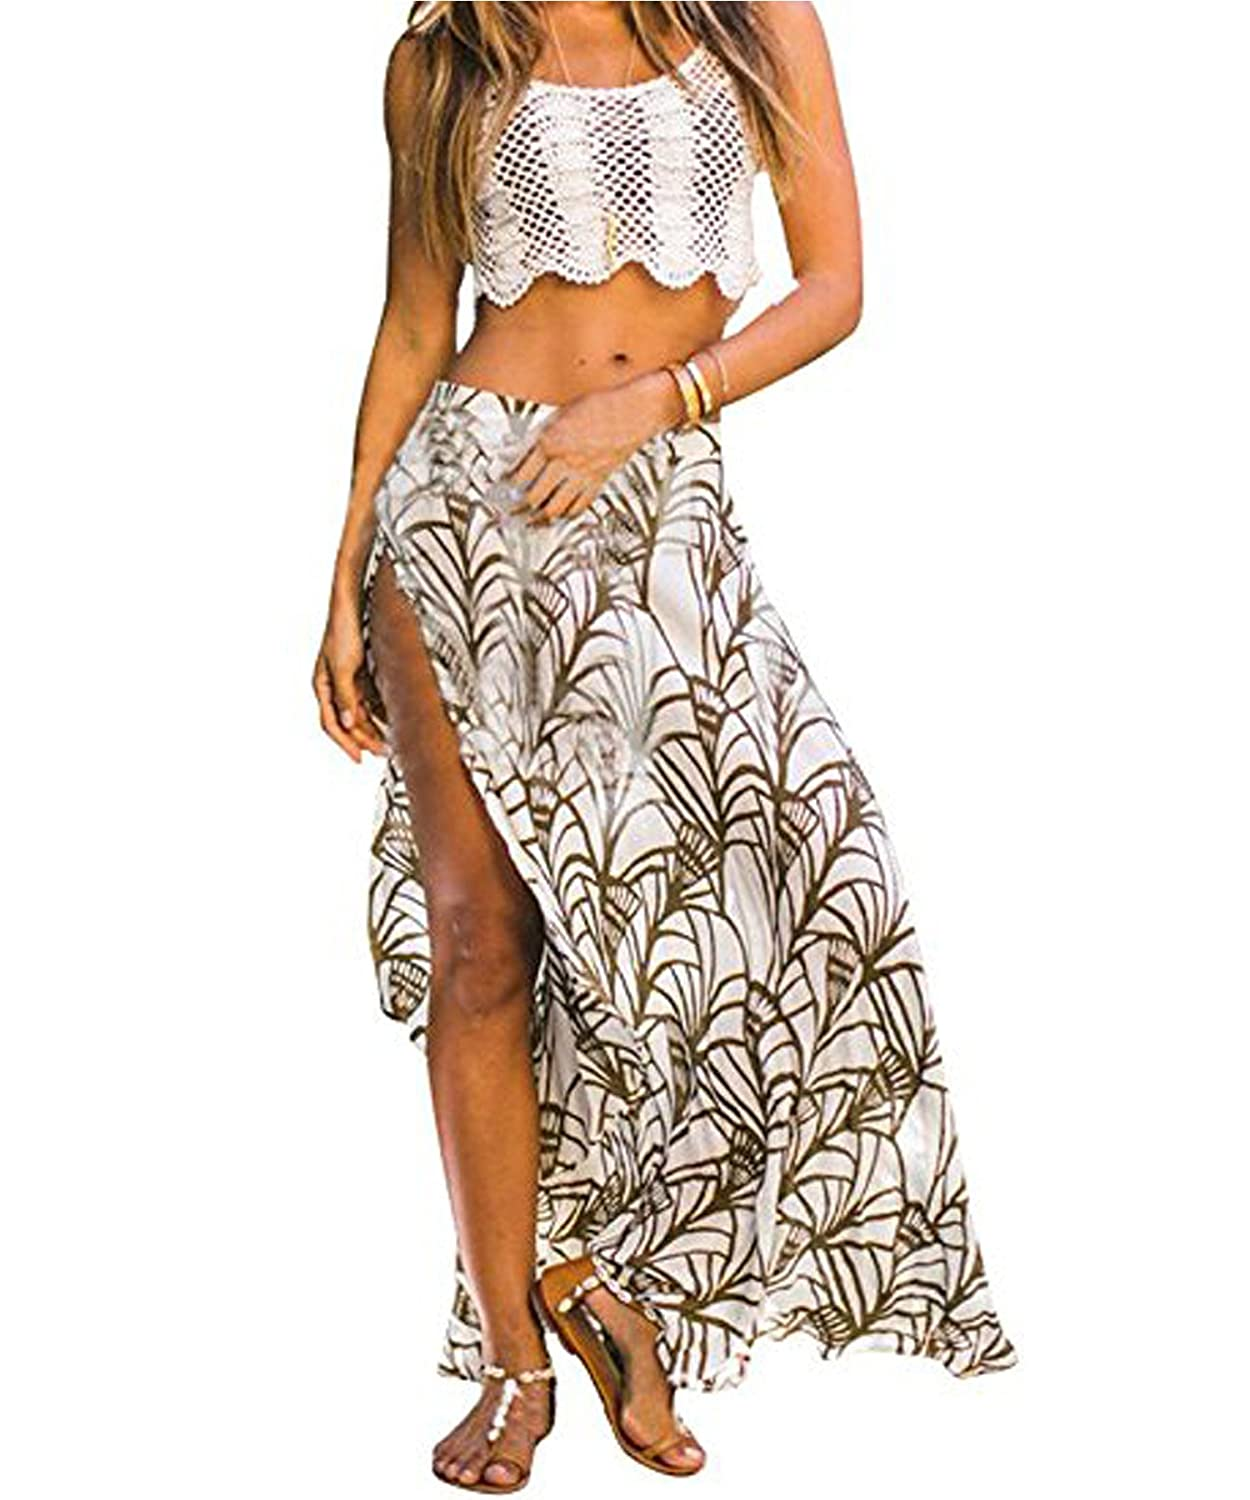 NWT WHITE HOUSE BLACK MARKET Printed Chiffon Maxi Skirt Sz 0,2,8 $130.00